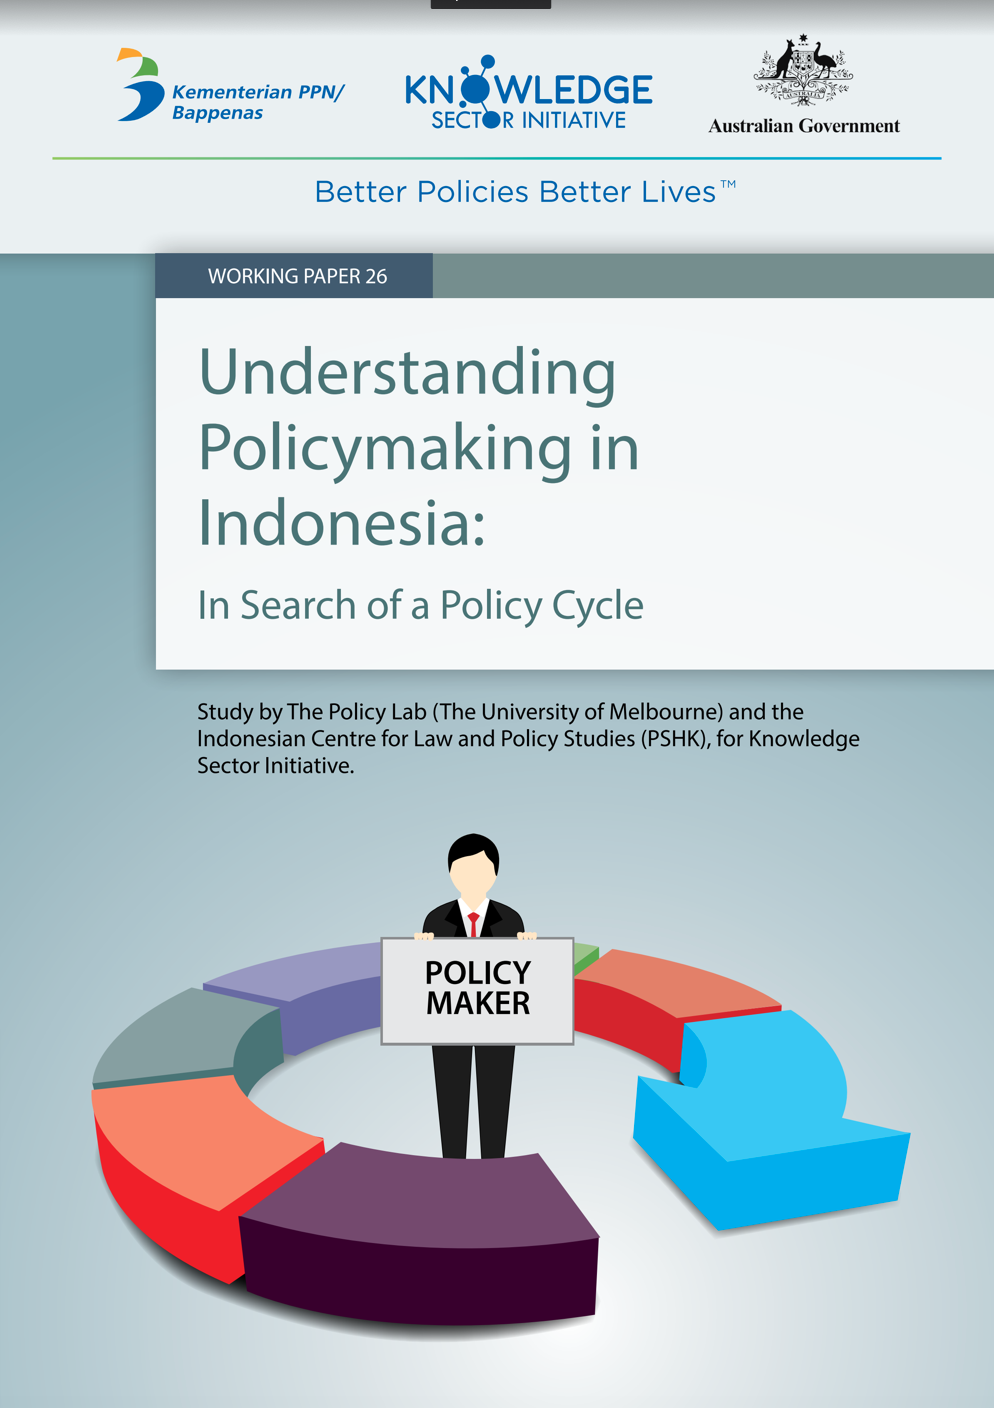 Working Paper -</br>Understanding Policy Making in Indonesia: in Search of a Policy Cycle